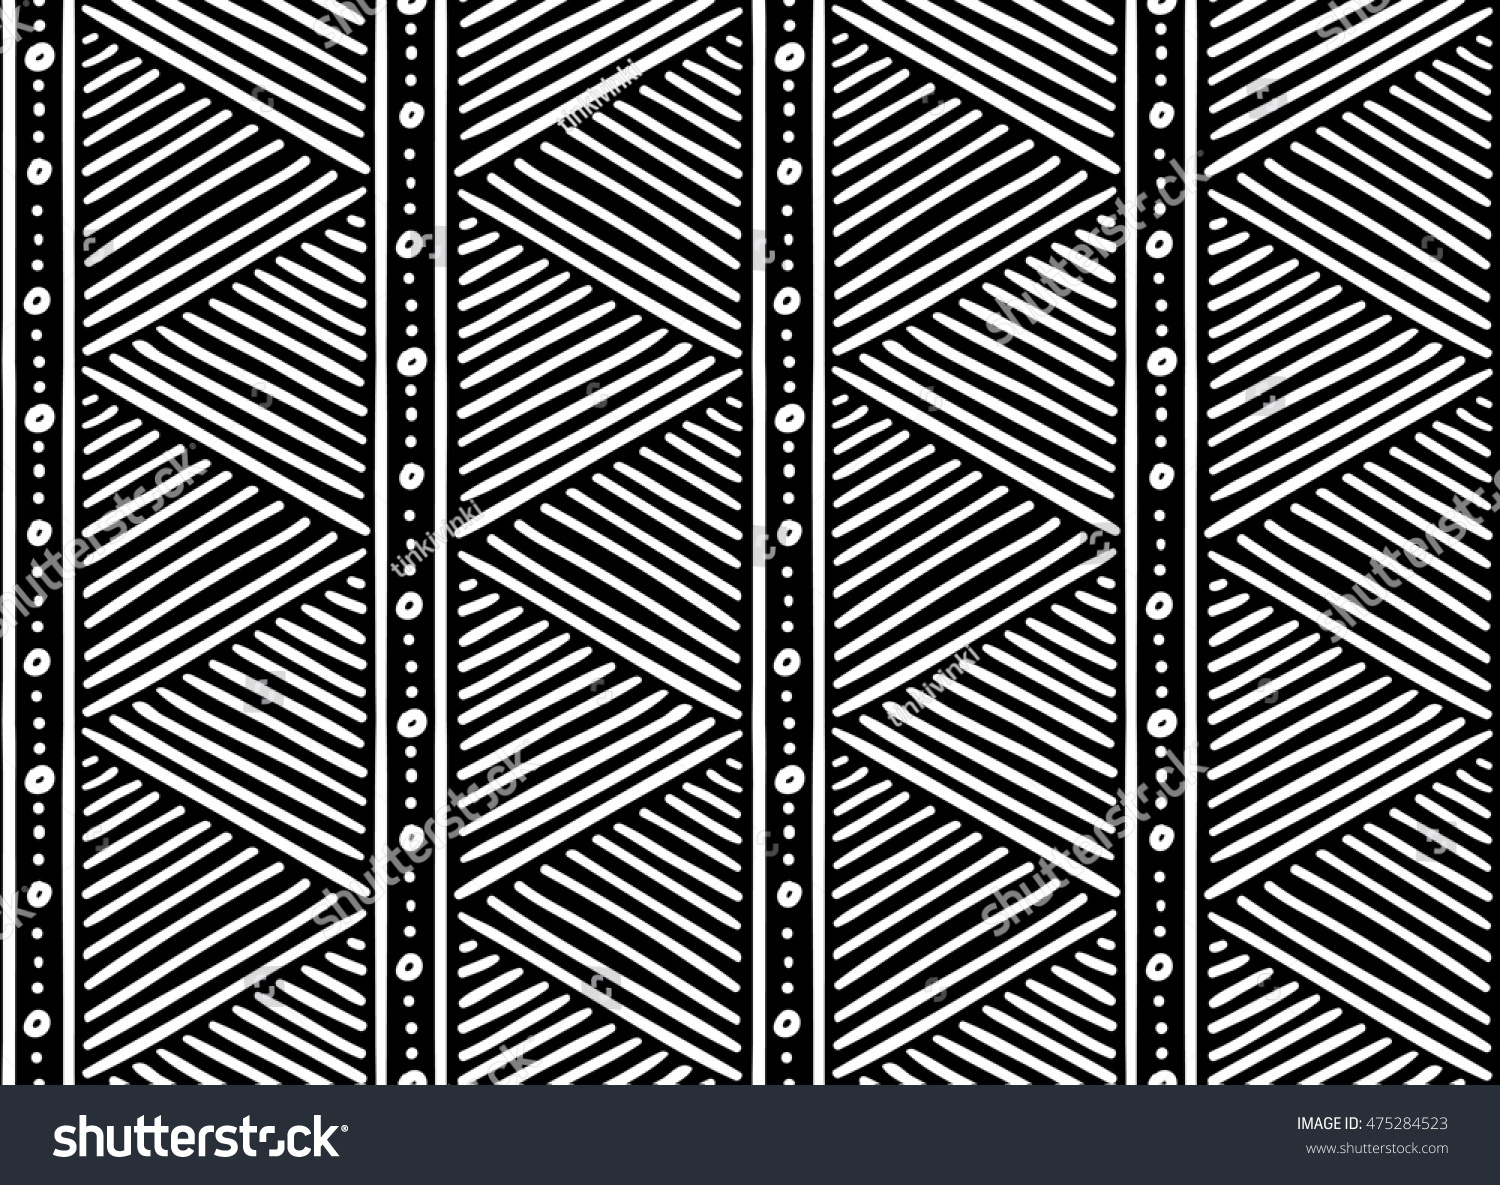 Tribal ethnic seamless african pattern black and white striped pattern